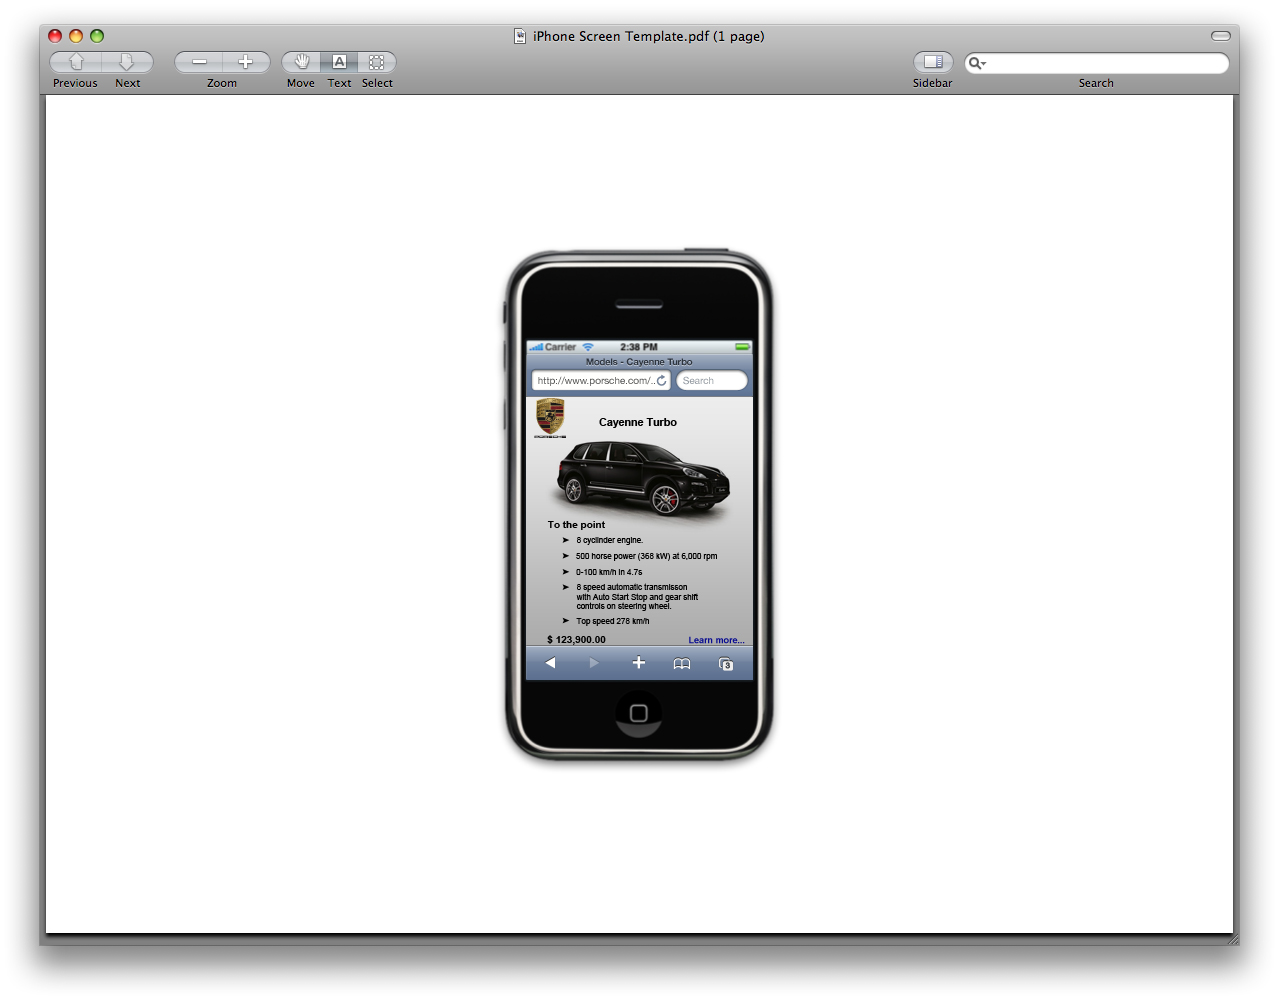 Gallery 91 Inc.: Iphone web page screen shots: Porsche version 2.0!